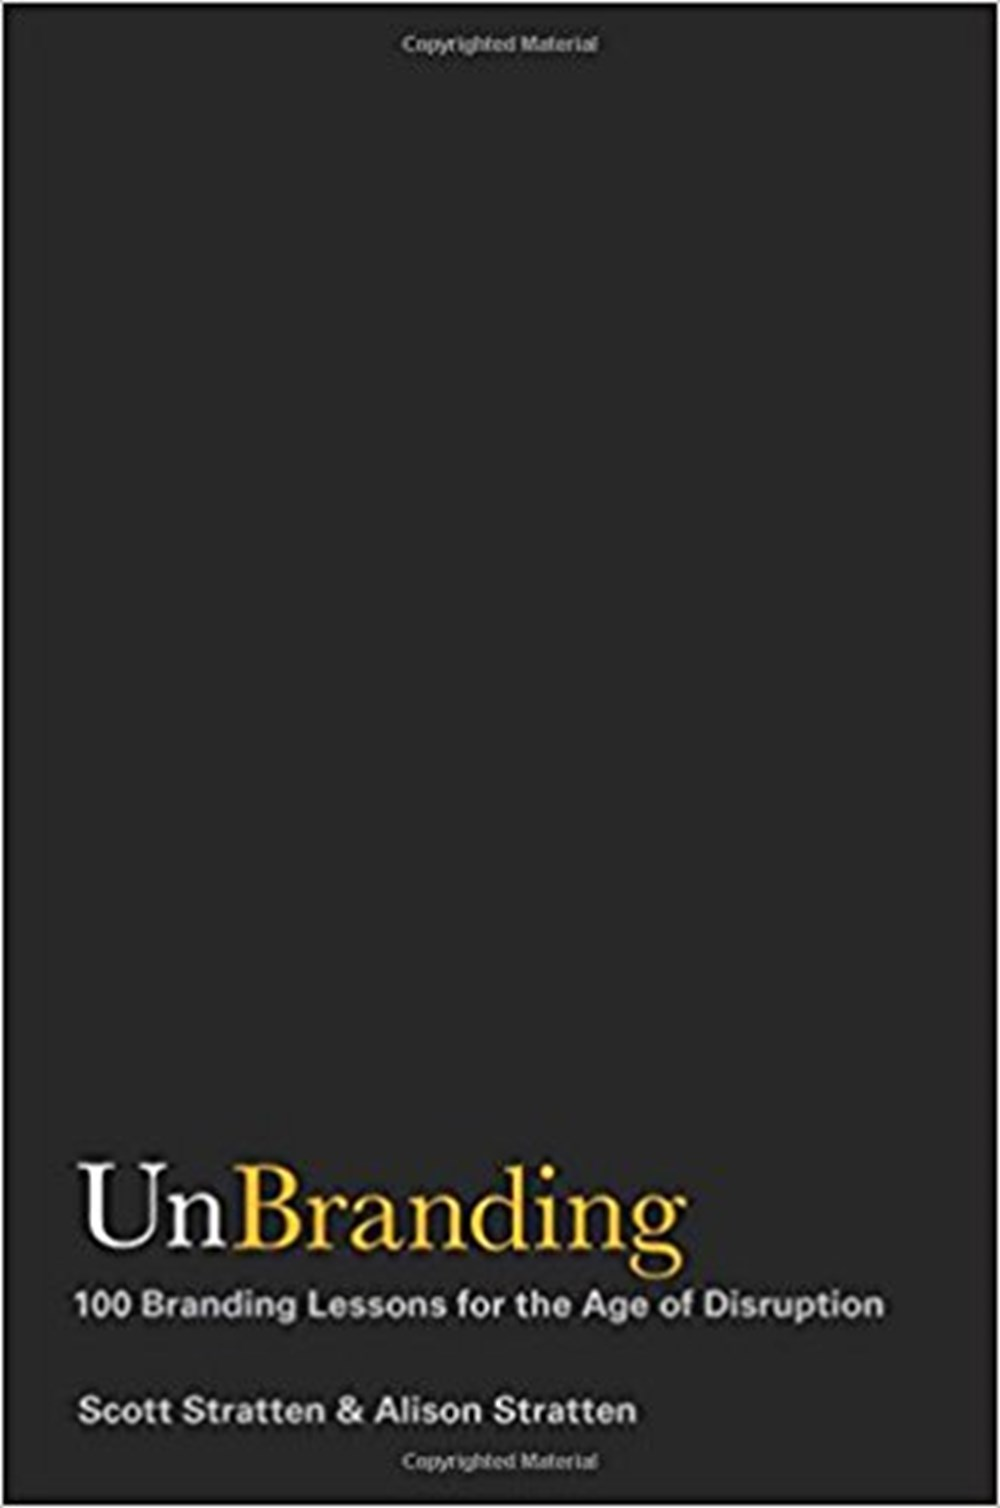 UnBranding 100 Branding Lessons for the Age of Disruption